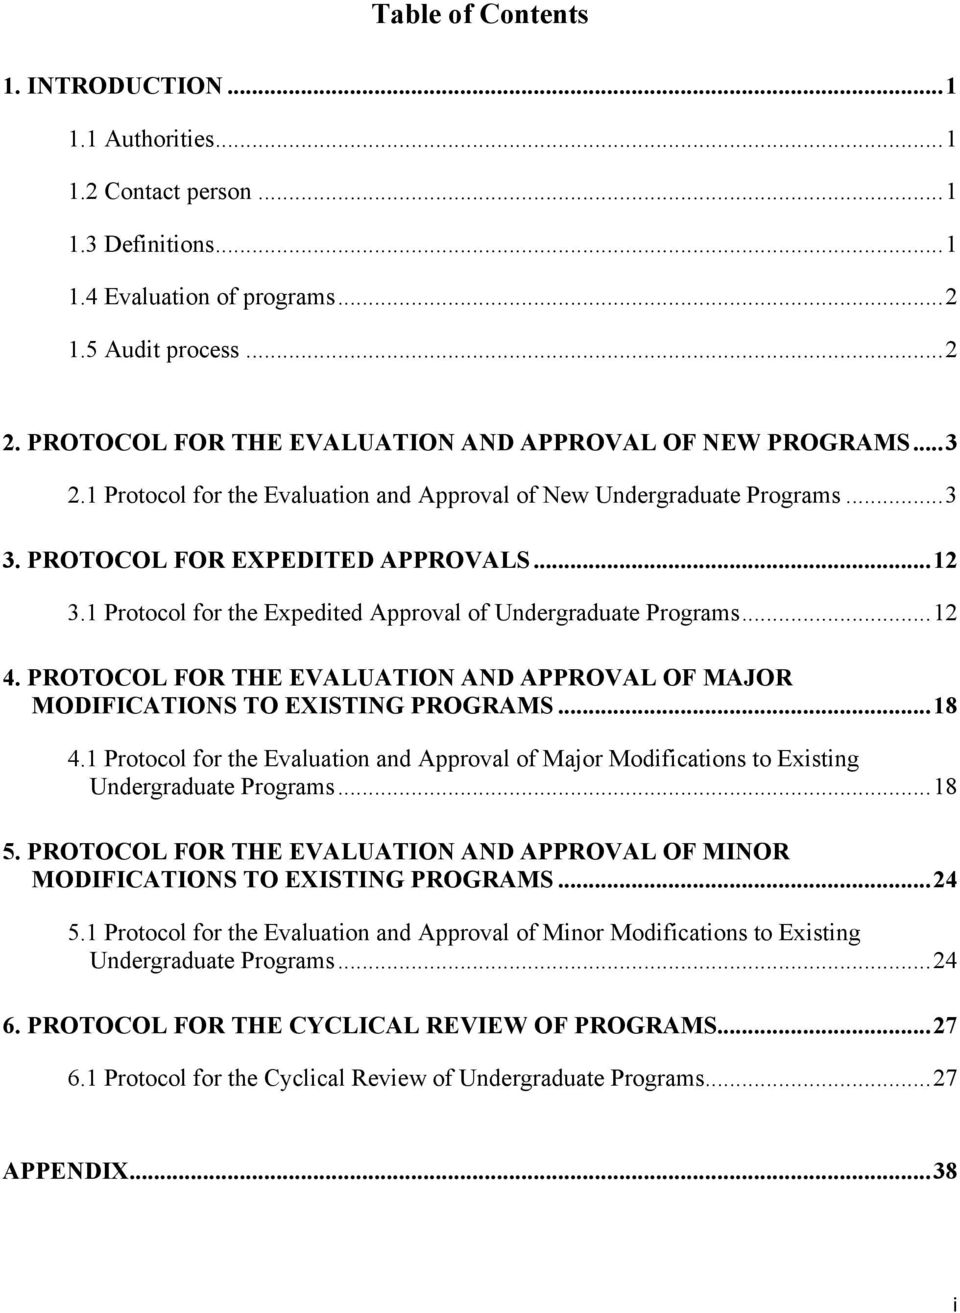 1 Protocol for the Expedited Approval of Undergraduate Programs... 12 4. PROTOCOL FOR THE EVALUATION AND APPROVAL OF MAJOR MODIFICATIONS TO EXISTING PROGRAMS... 18 4.